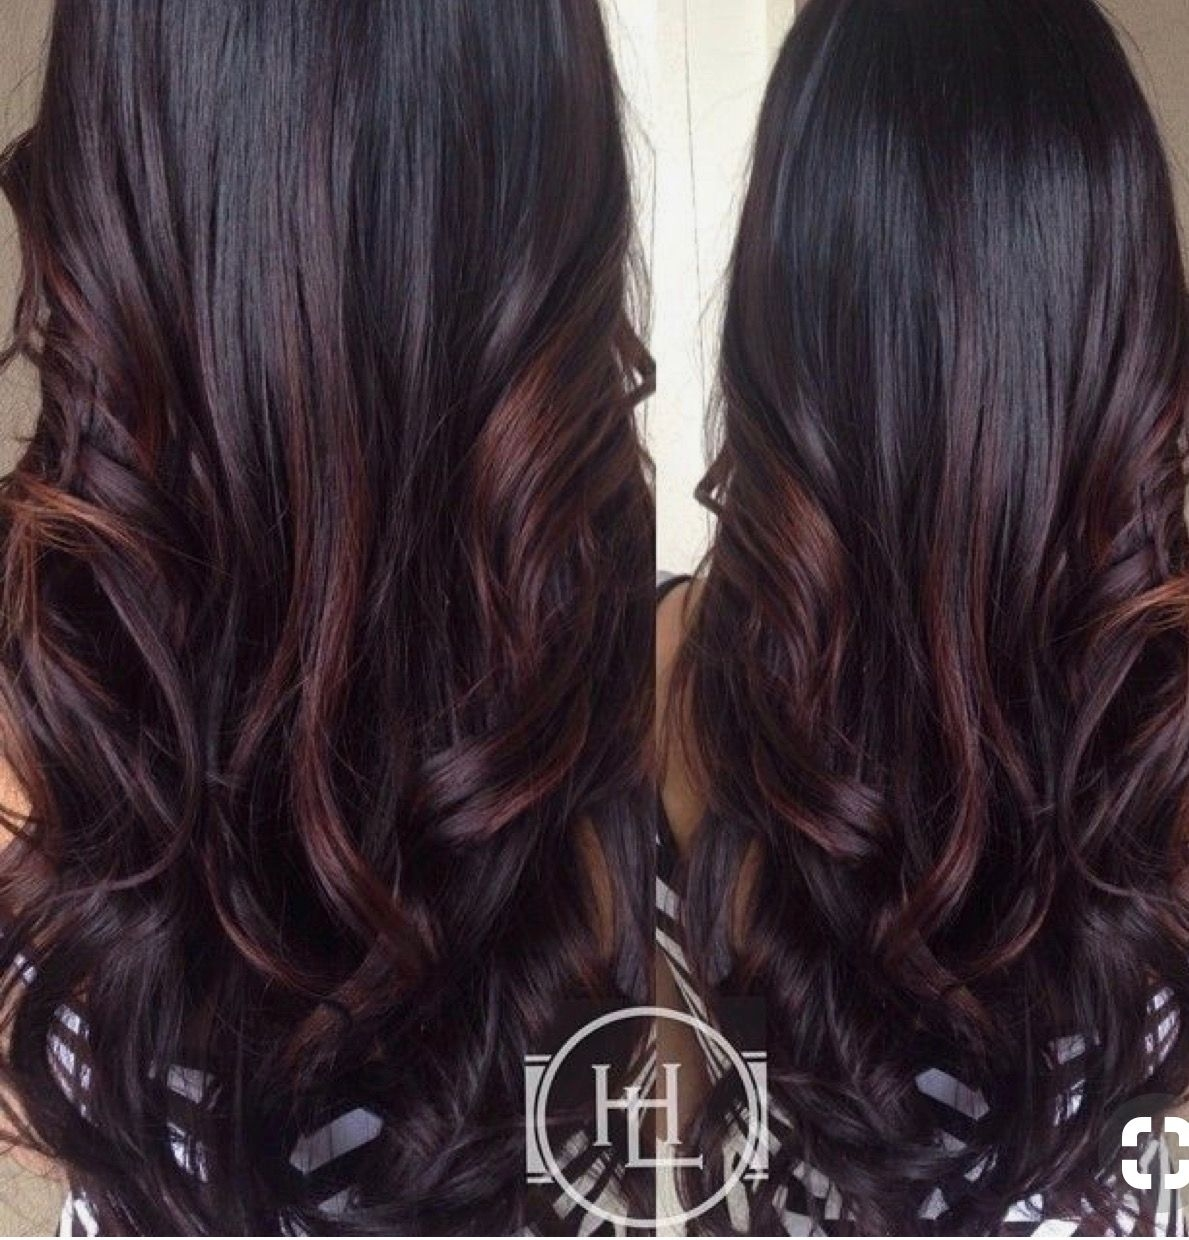 Pin By Megan Cyr On Hair Styles | Hair, Long Dark Hair, Hair Color intended for Asian Hair With Red Highlights